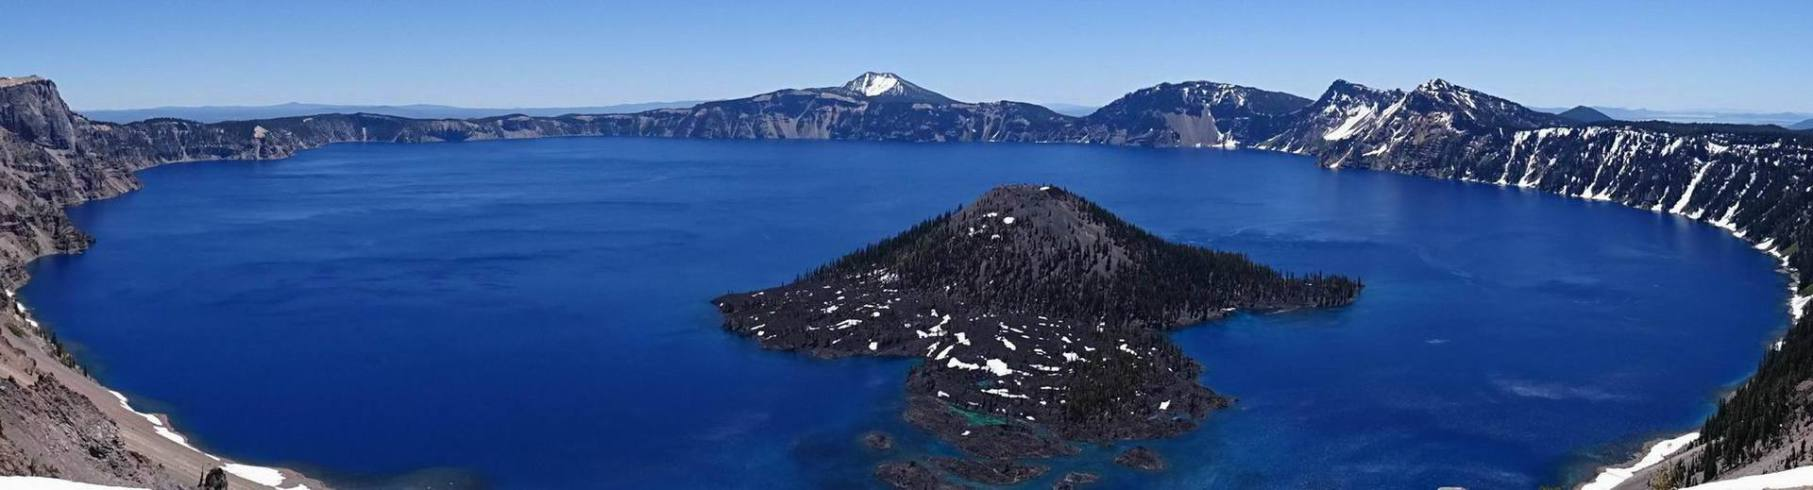 Le parc national de crater lake en oregon